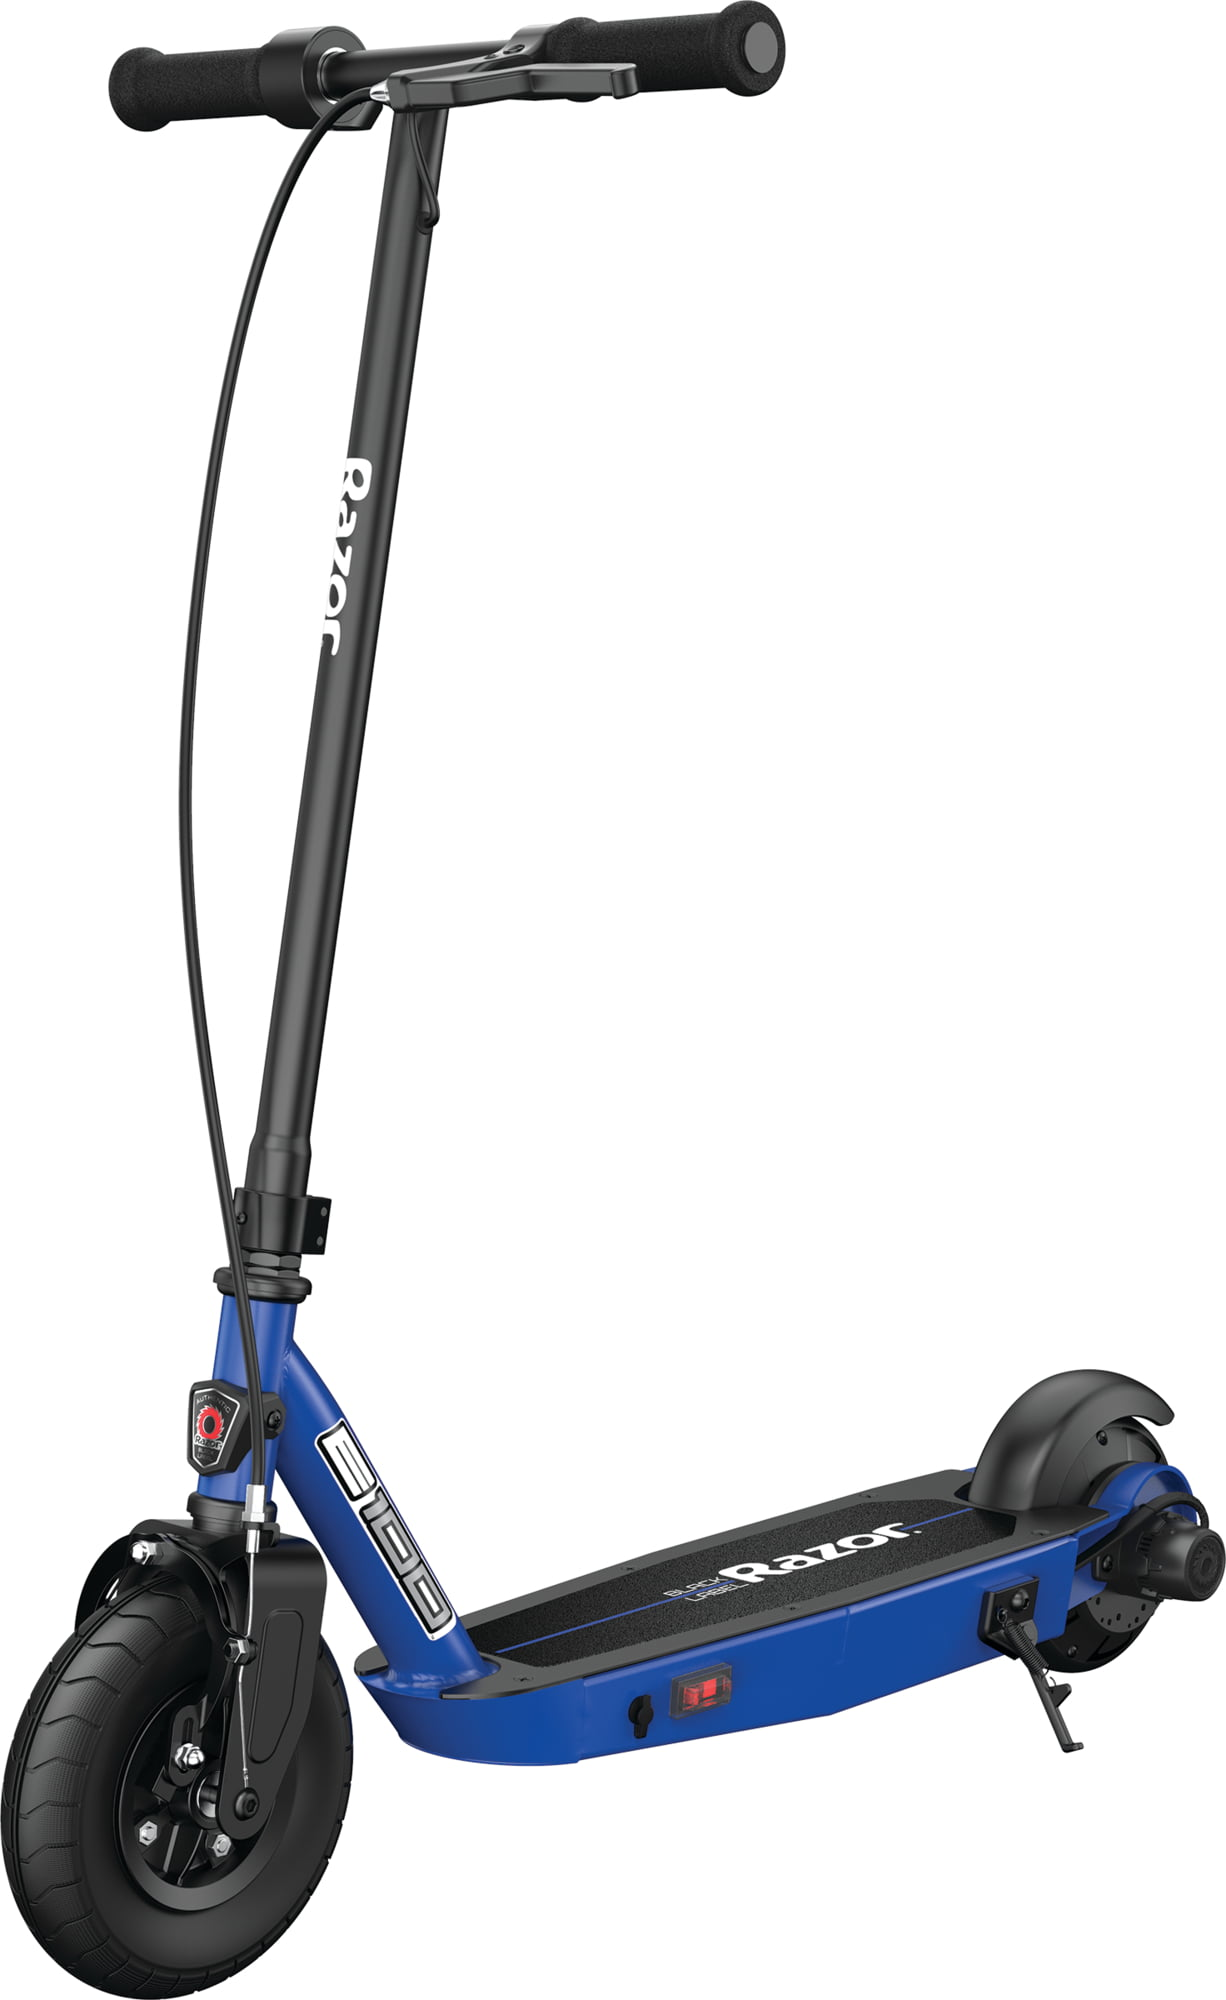 """Razor Black Label E100 Electric Scooter for Kids Age 8 and up, 8"""" Air-Filled Front Tire, Power Core High-Torque Hub Motor - Walmart.com - Walmart.com"""